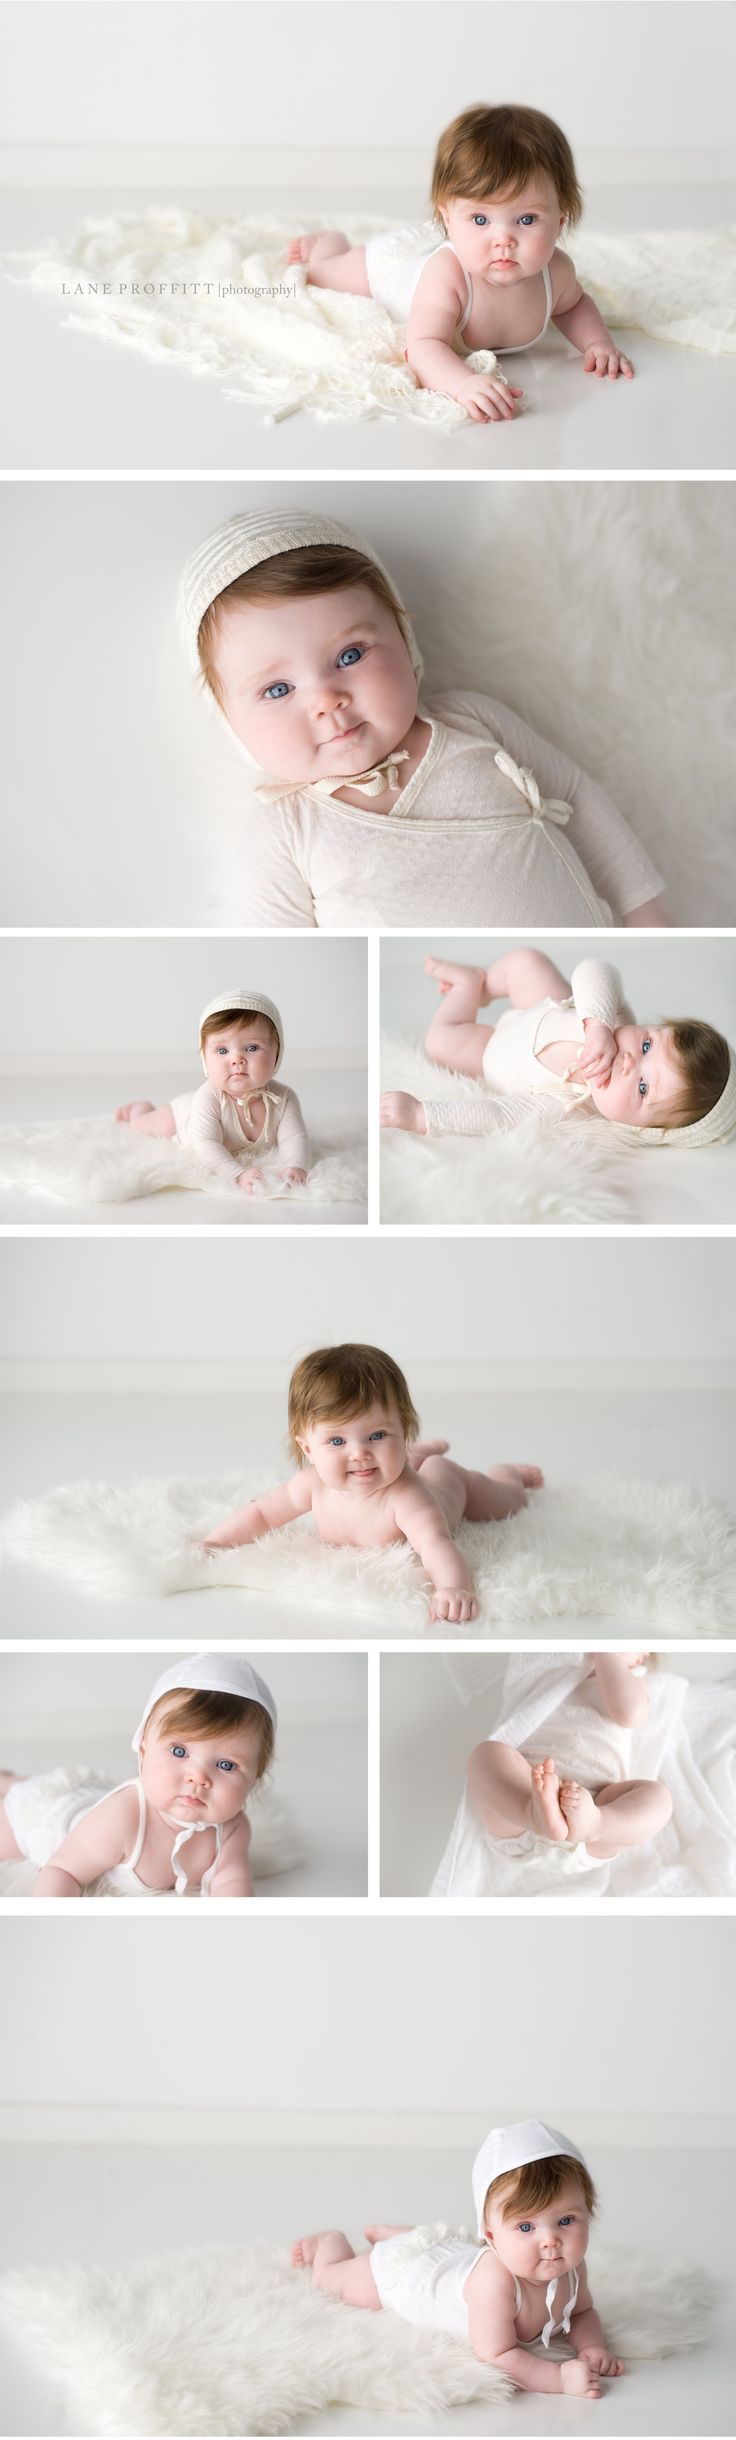 best images about what to wear baby on pinterest